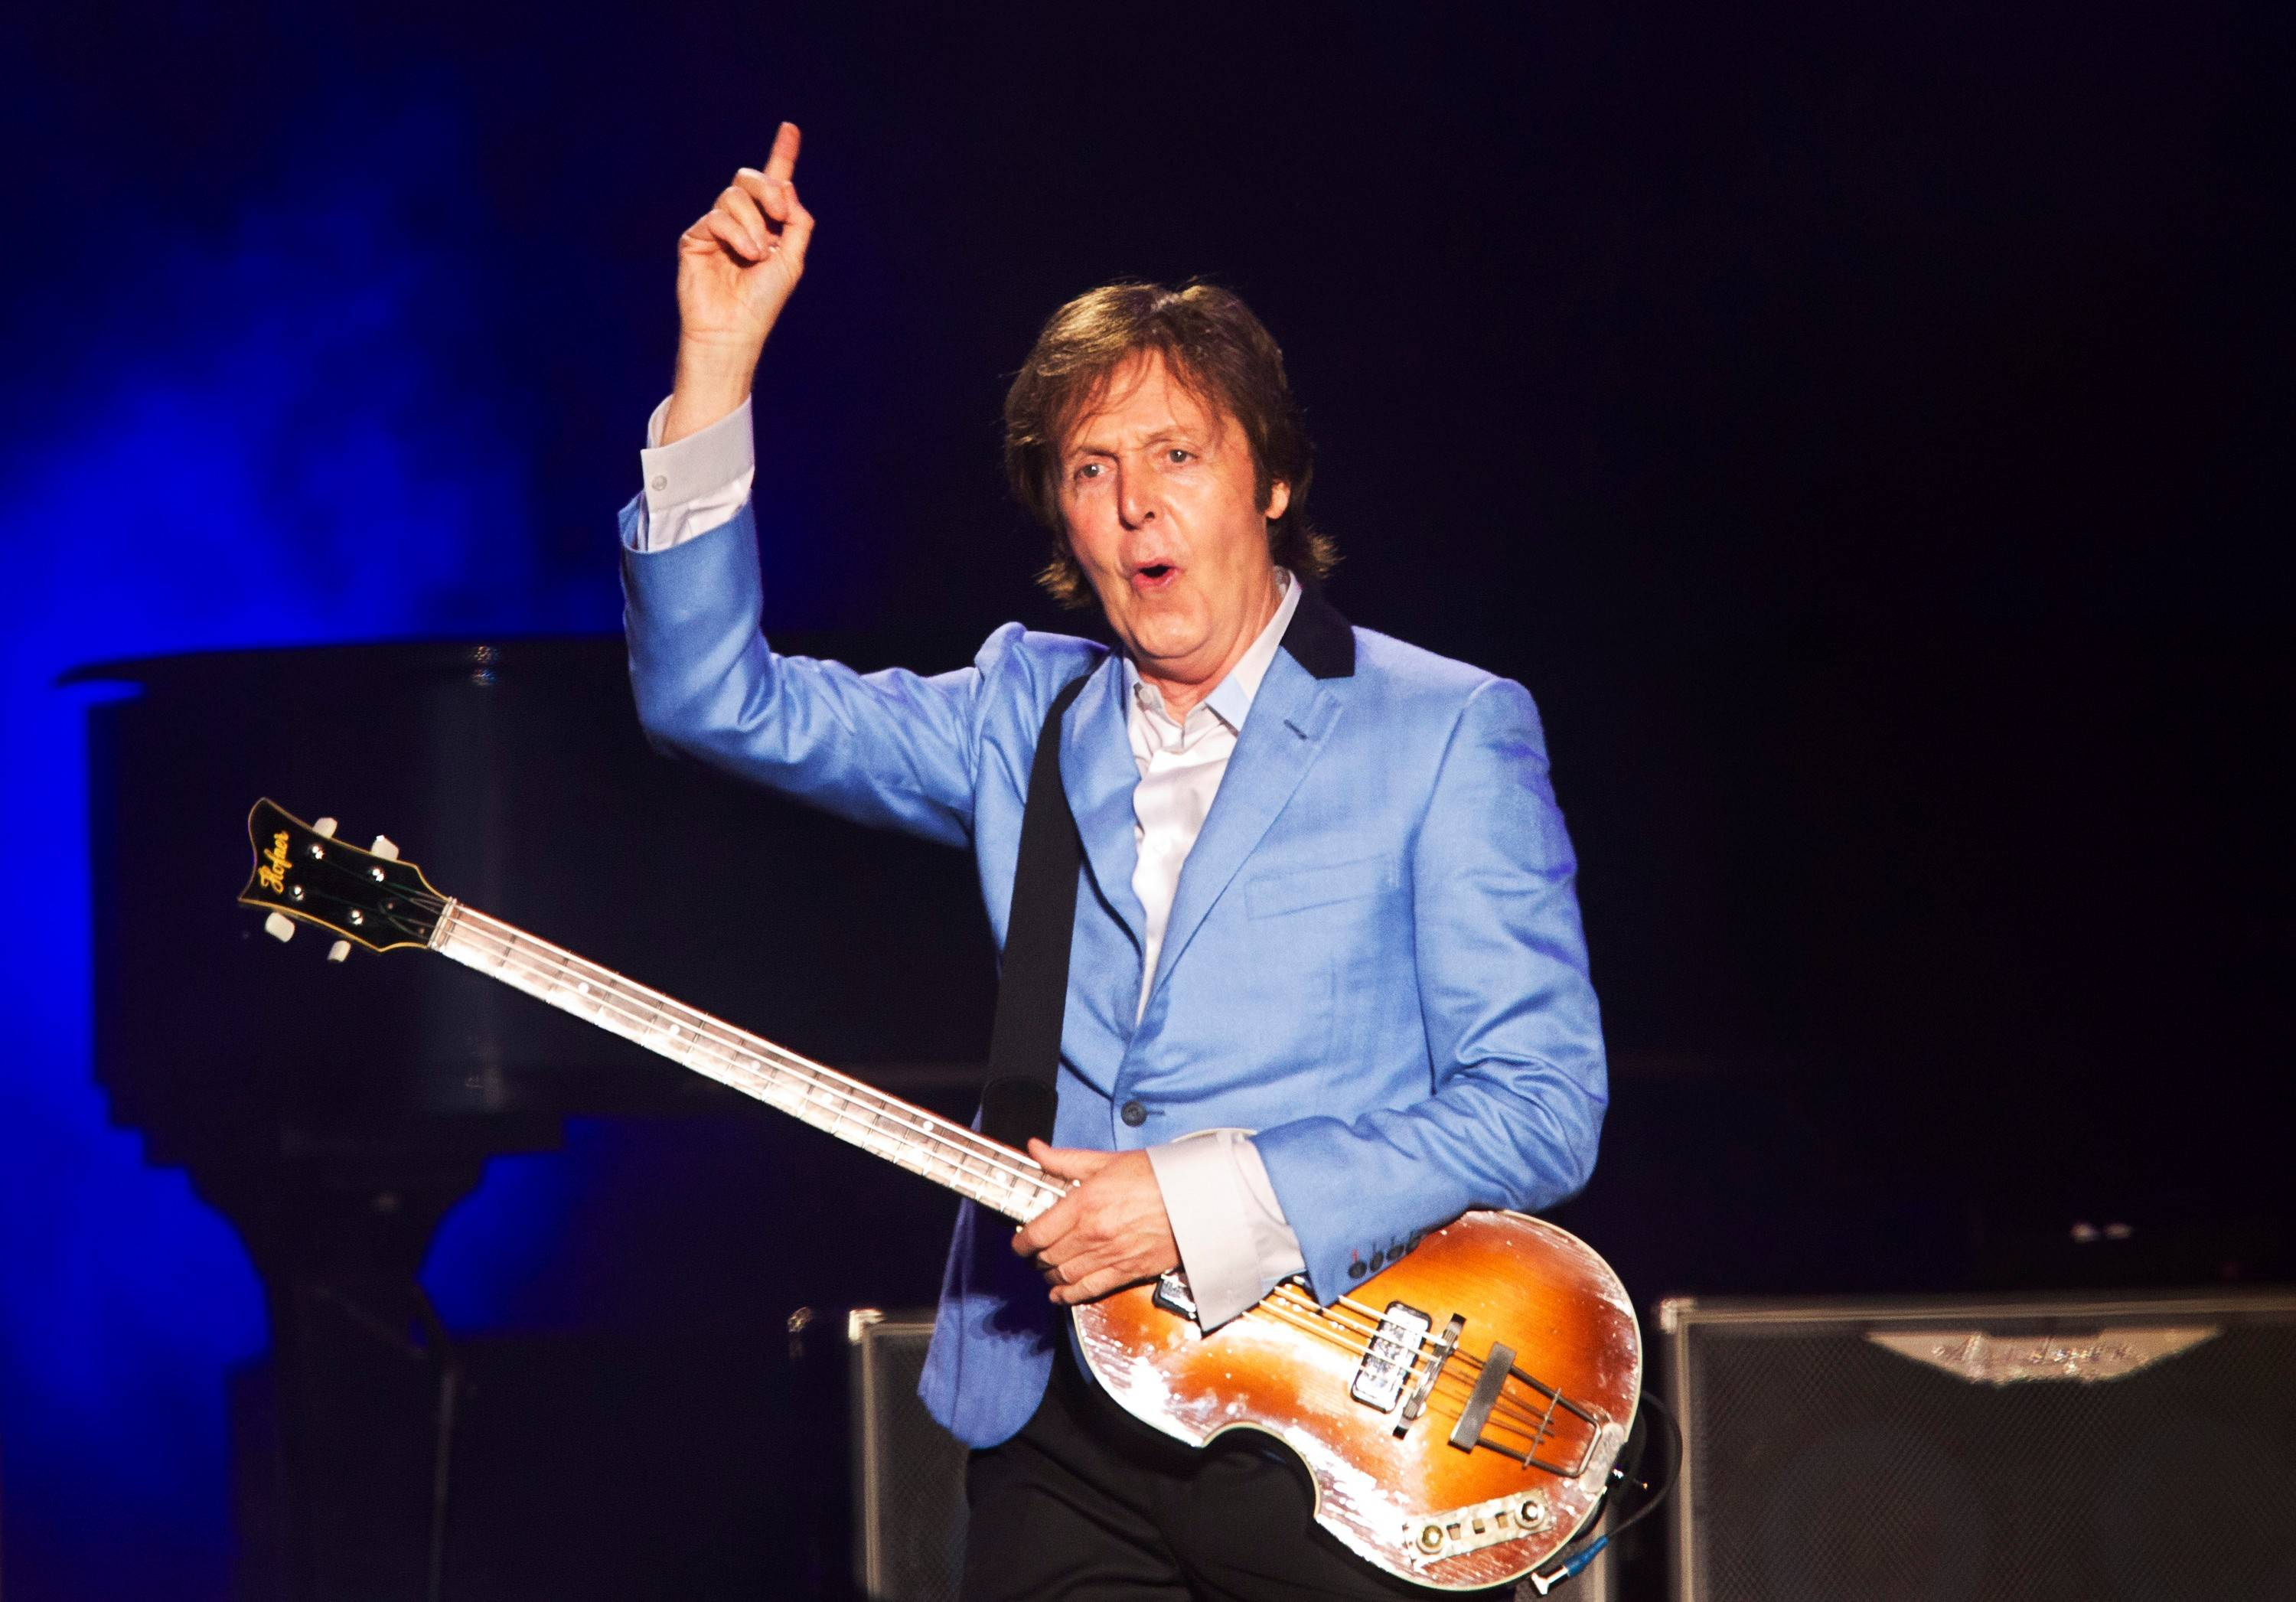 Paul McCartney headlines Wrigley Field in concerts Sunday and Monday.